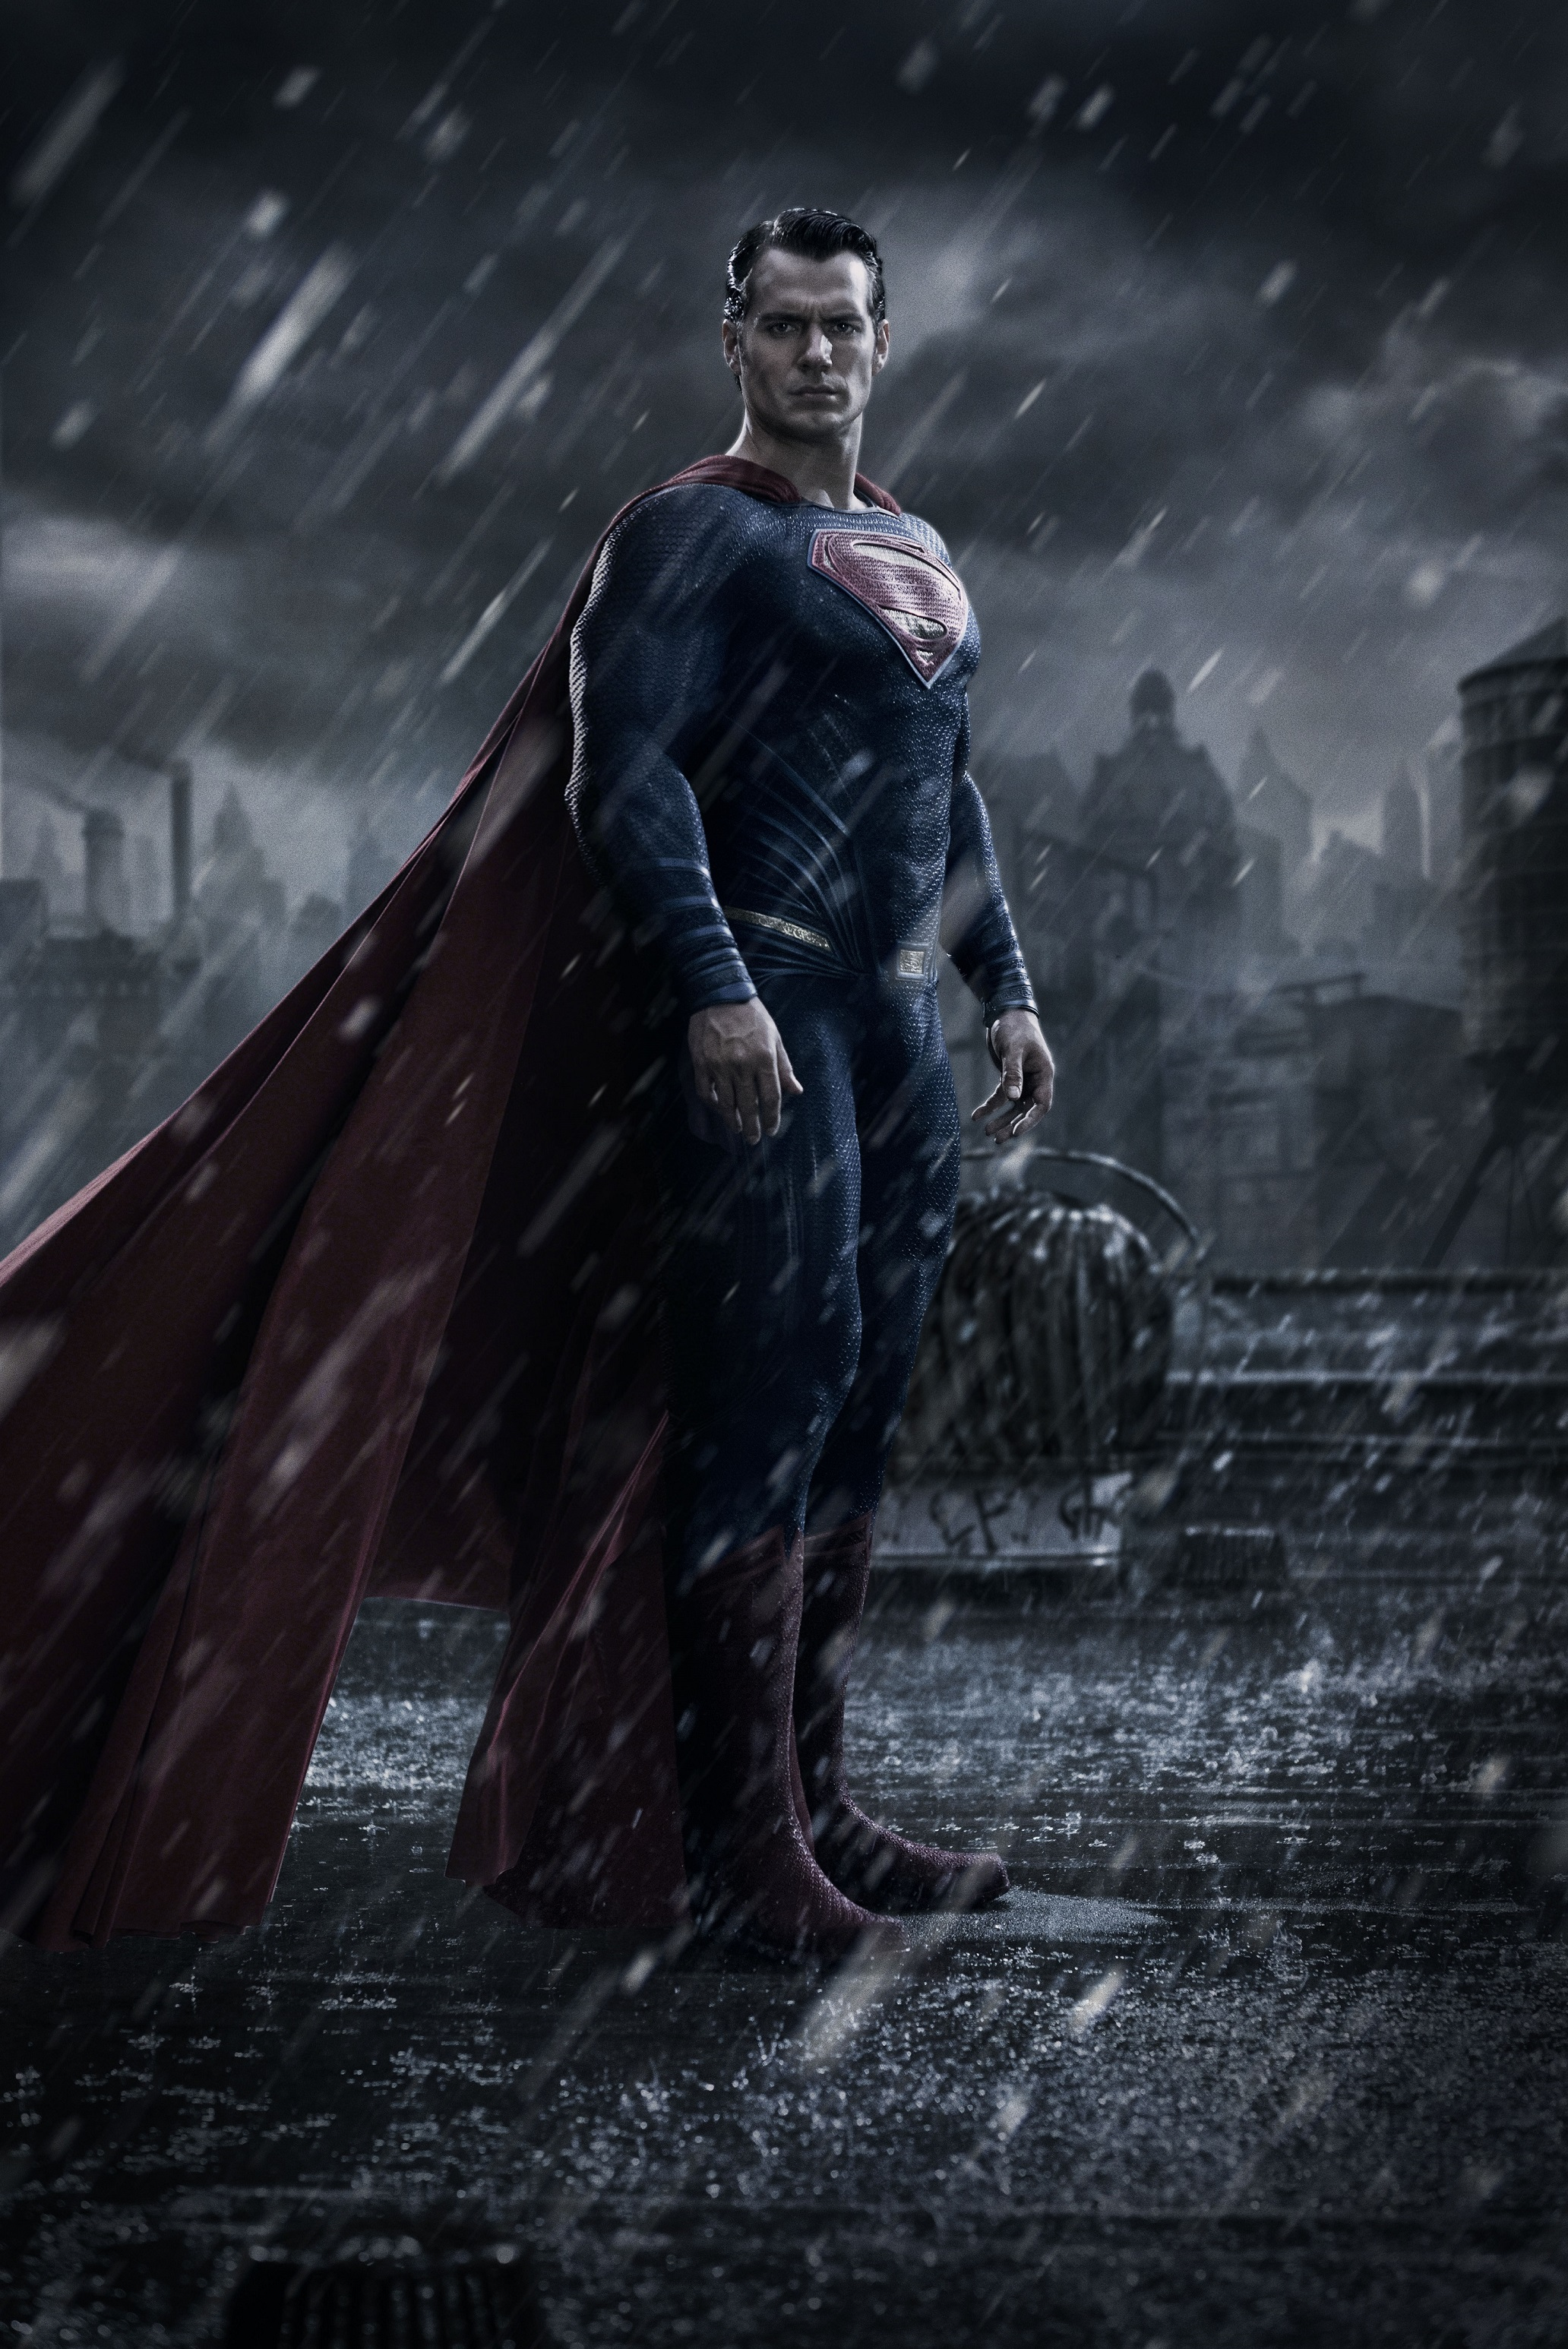 SUPERMAN V BATMAN DAWN OF JUSTICE-Official Poster FIRST LOOK-04JULHO2014